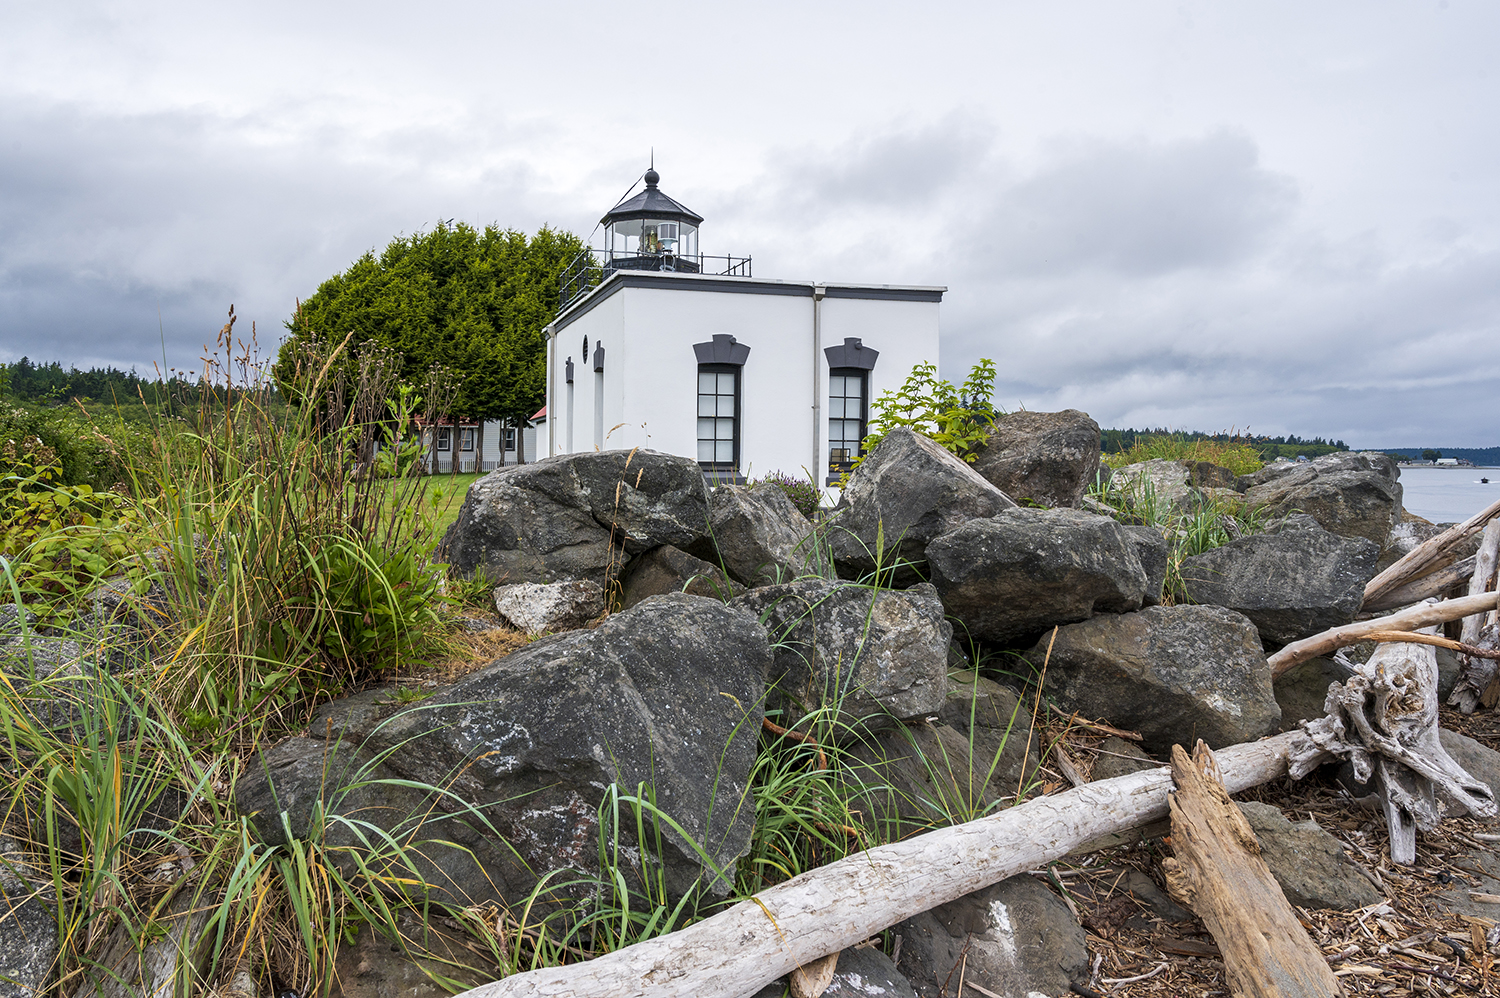 Fully automated to a rotating beacon in 1977, the keeper's quarters were reserved for the Coast Guard. But today, you can traverse the sandy beaches or stay overnight in one of the United States Lighthouse Society's vacation rentals: a large Historic Keeper's Quarters or the one-bedroom Keeper John Maggs' House. (Image: Rachael Jones / Seattle Refined)